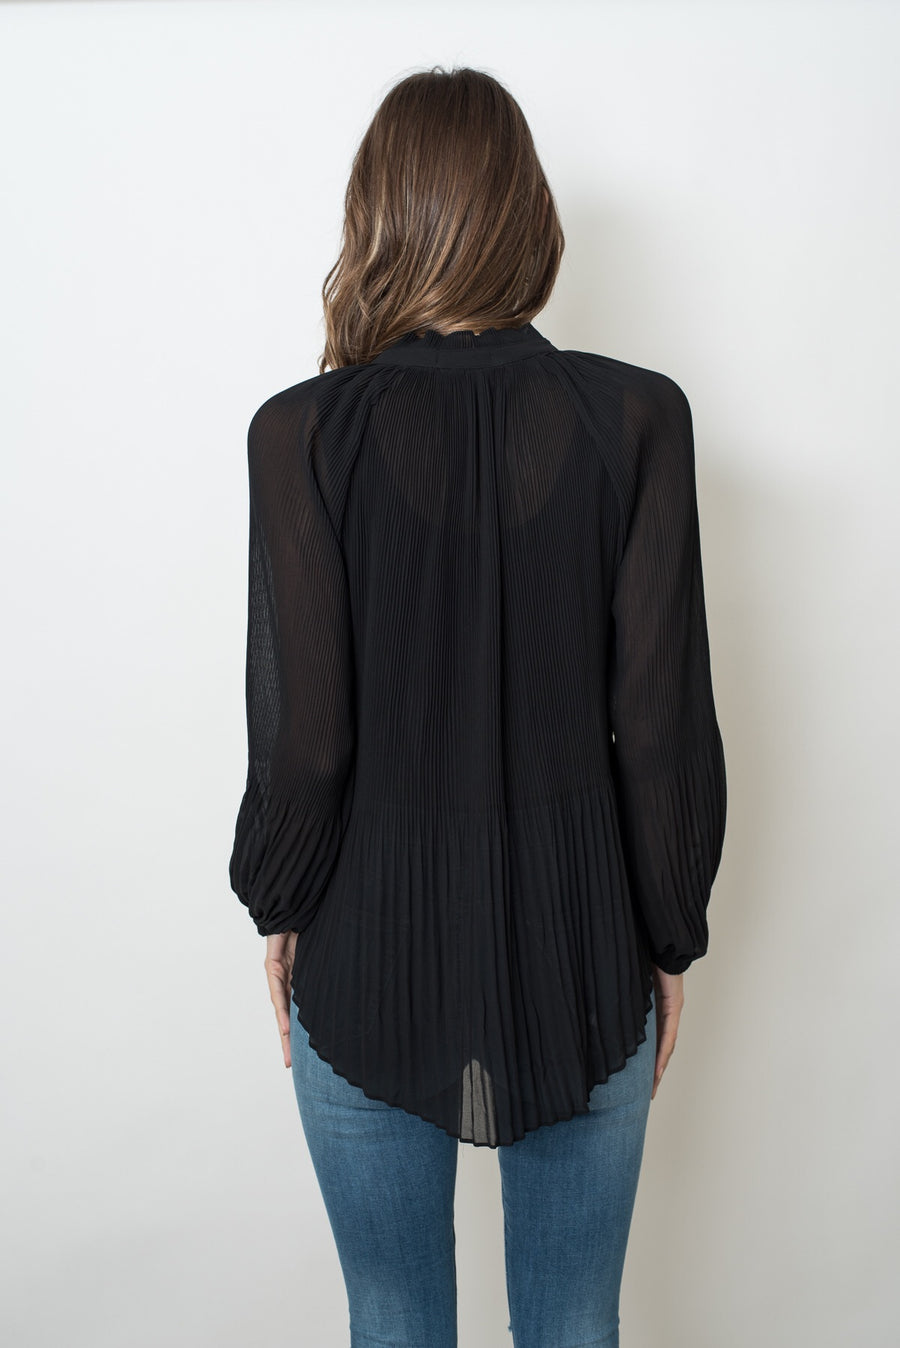 MADELINE TOP - BLACK